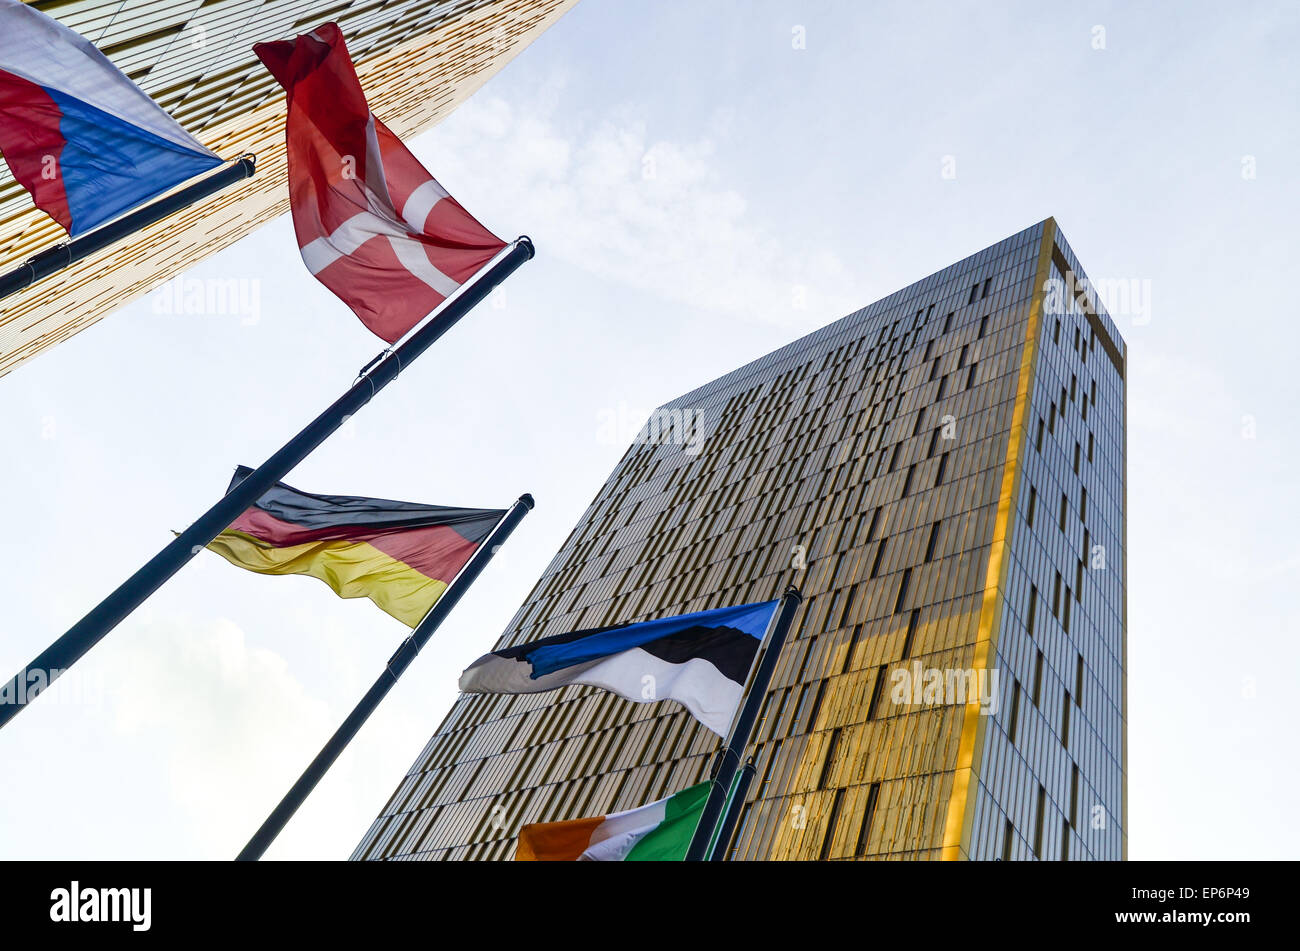 Golden twin towers of the Court of Justice of the European Union, in European Quarter, Kirchberg, Luxembourg, with - Stock Image